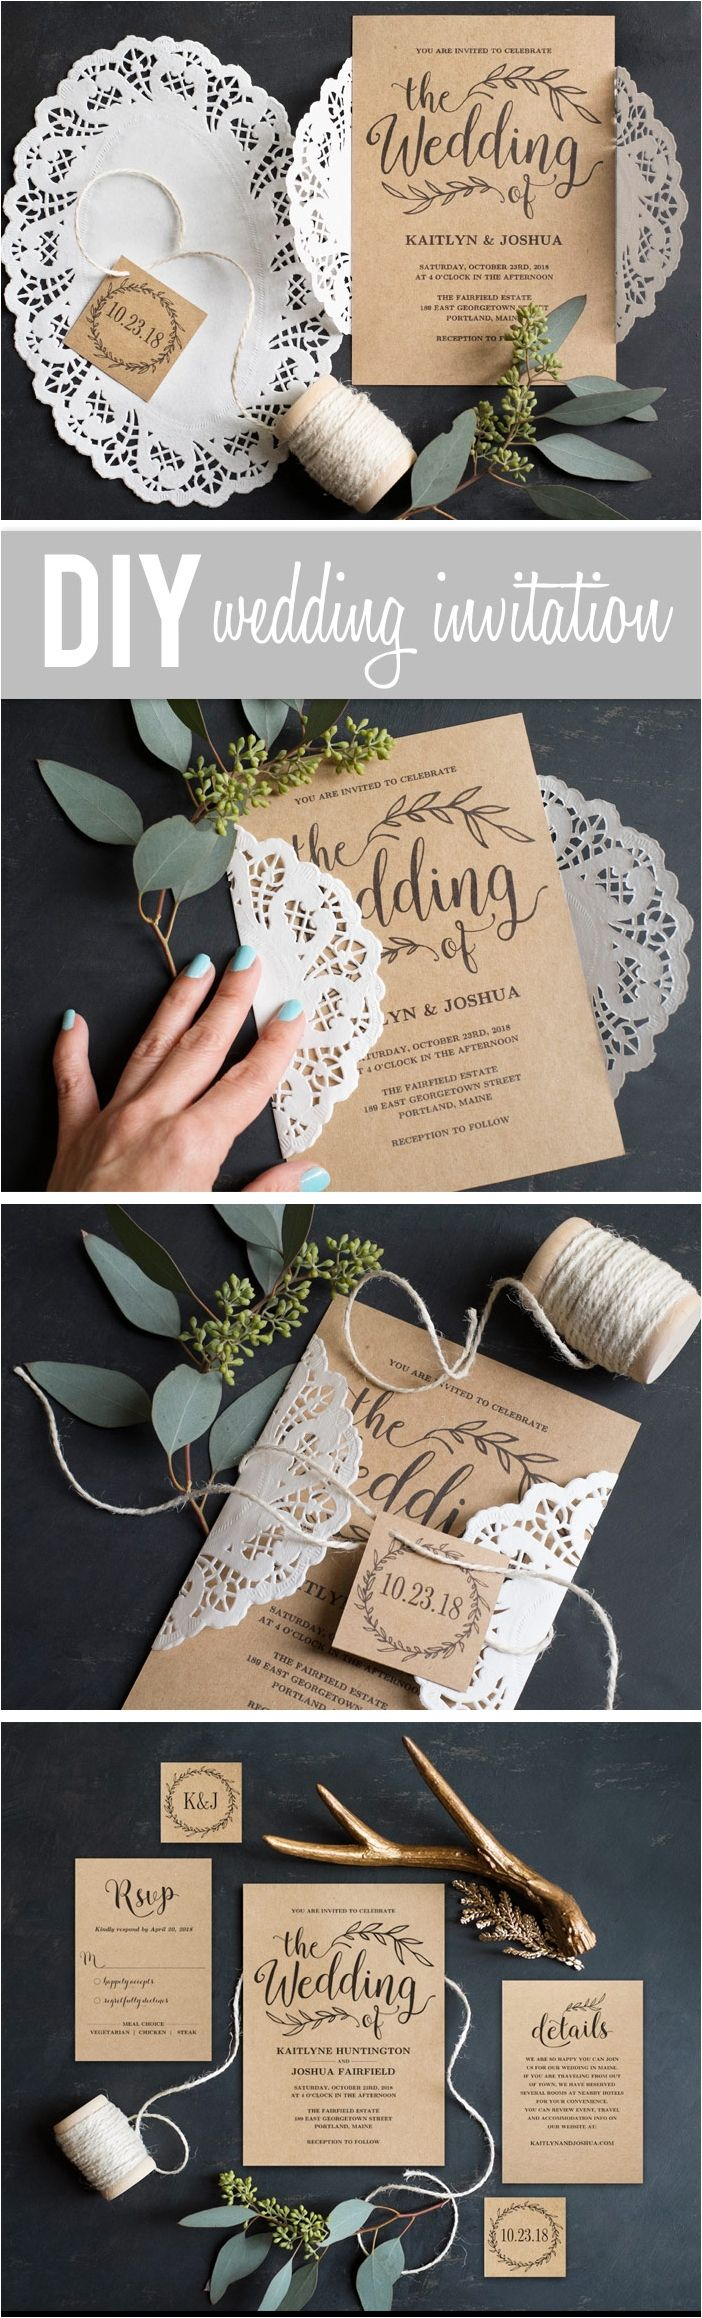 invitation letter for us vissample wedding%0A Rustic Wedding Invitation Inspiration For Your Rustic Wedding